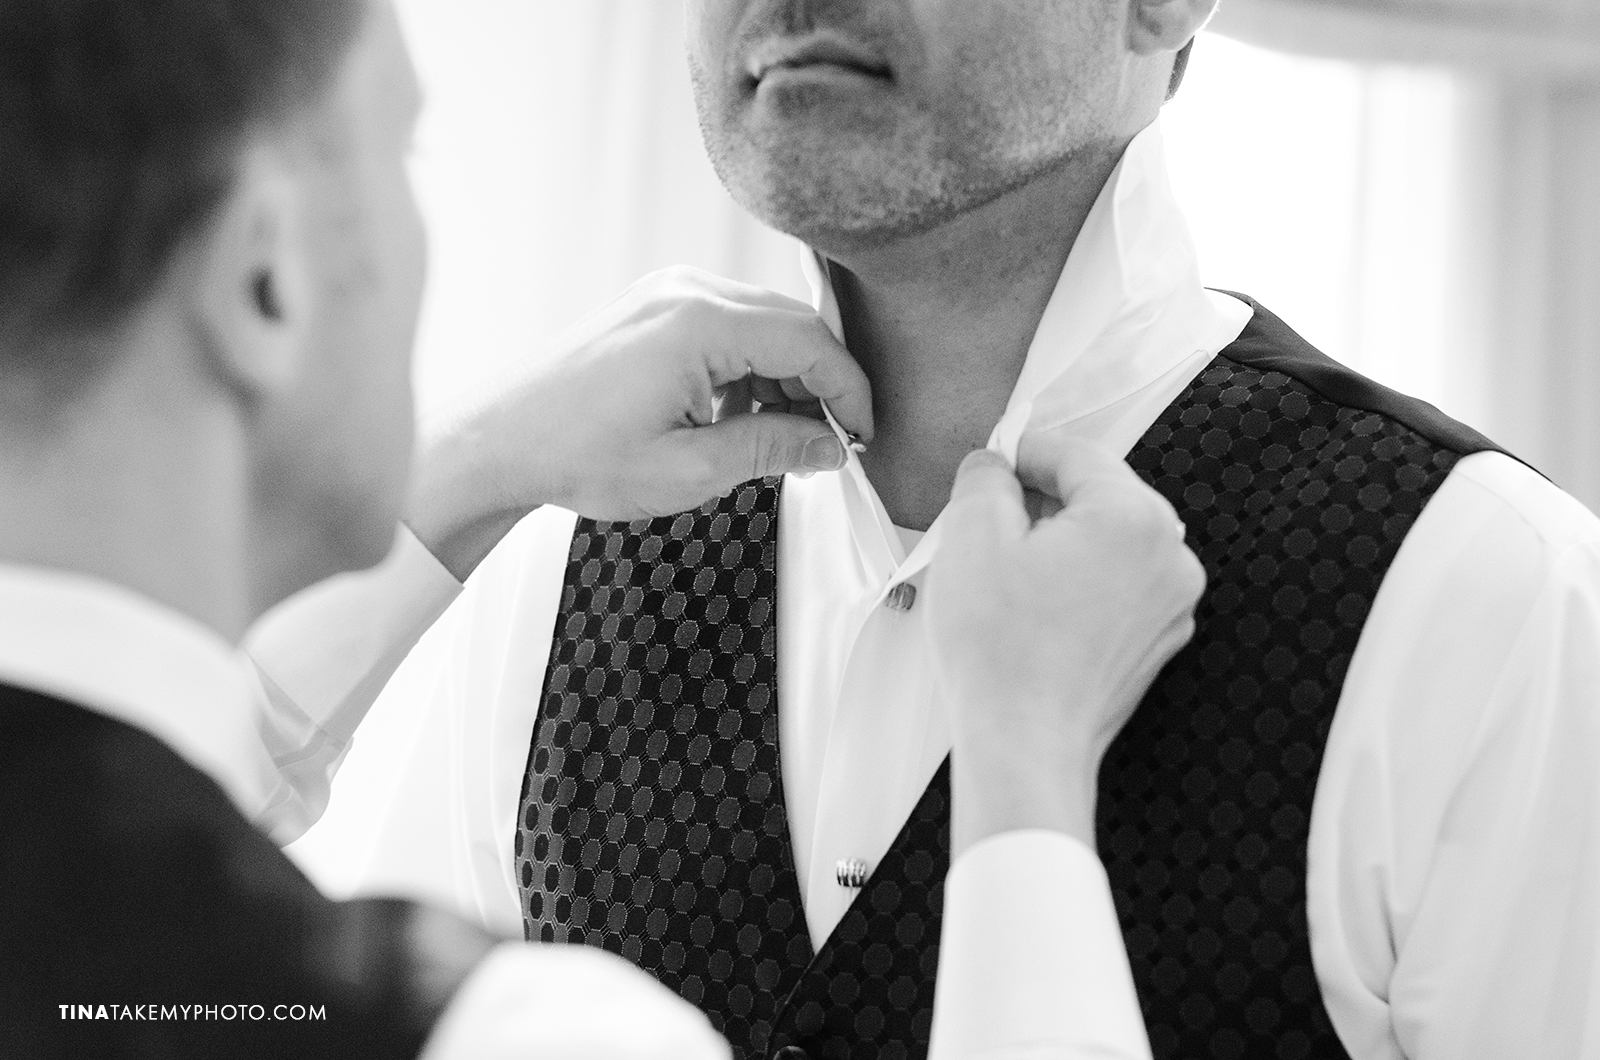 05-Washington-DC-Virginia-Gay-Same-Sex-Wedding-Men-12-13-14-Getting-Ready-Photographer